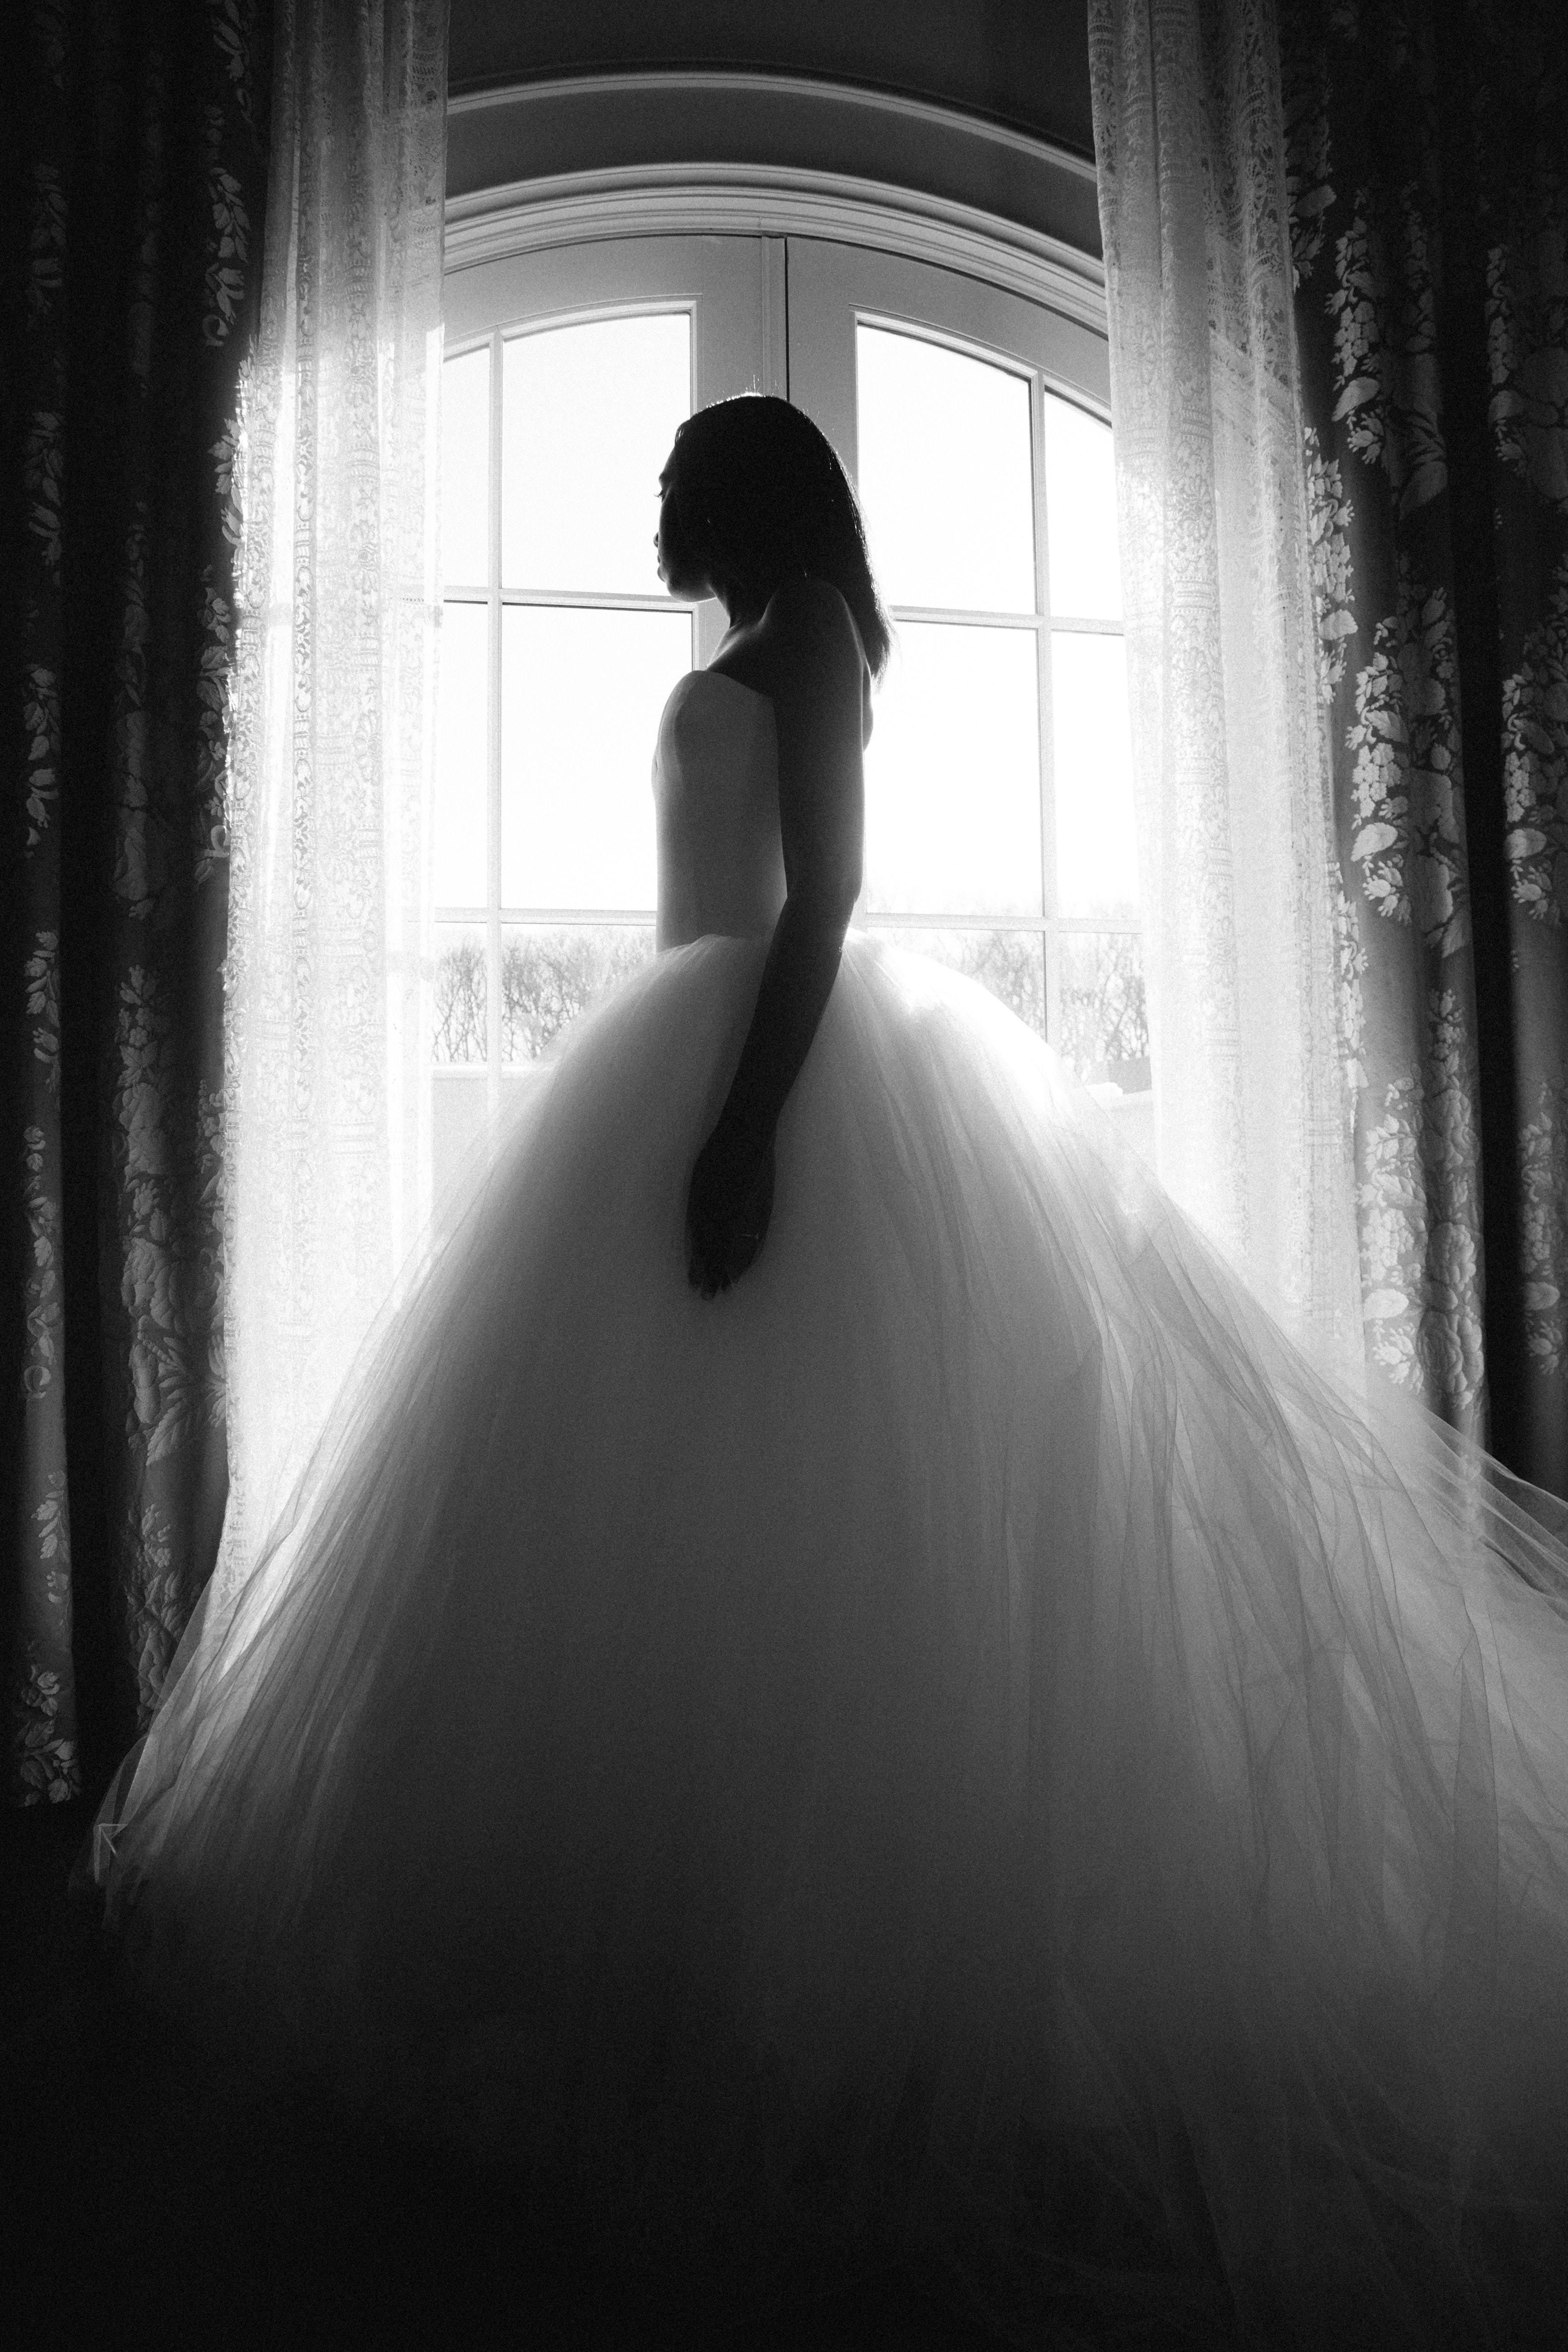 woman wearing wedding gown standing near window during daytime